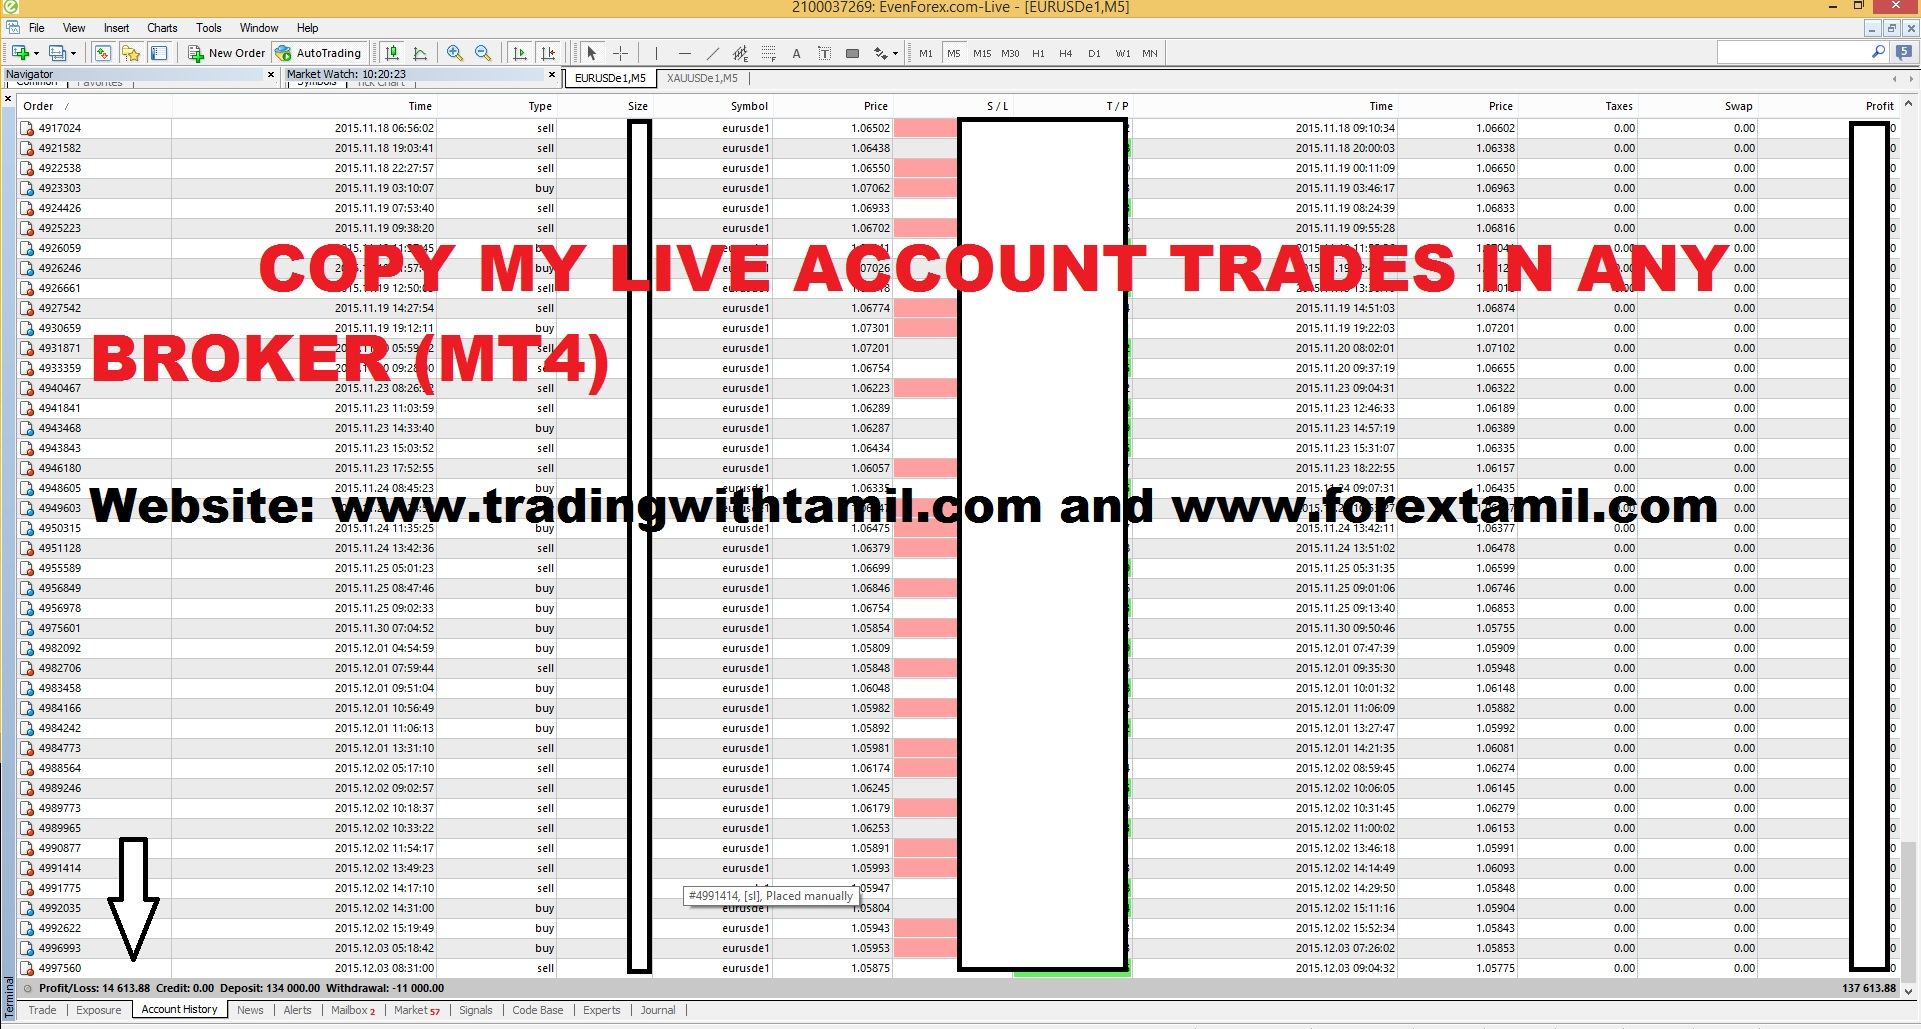 PROFIT :14613$ COPY TRADING IN ANY BROKER ALL OVER THE WORLD (MT4)